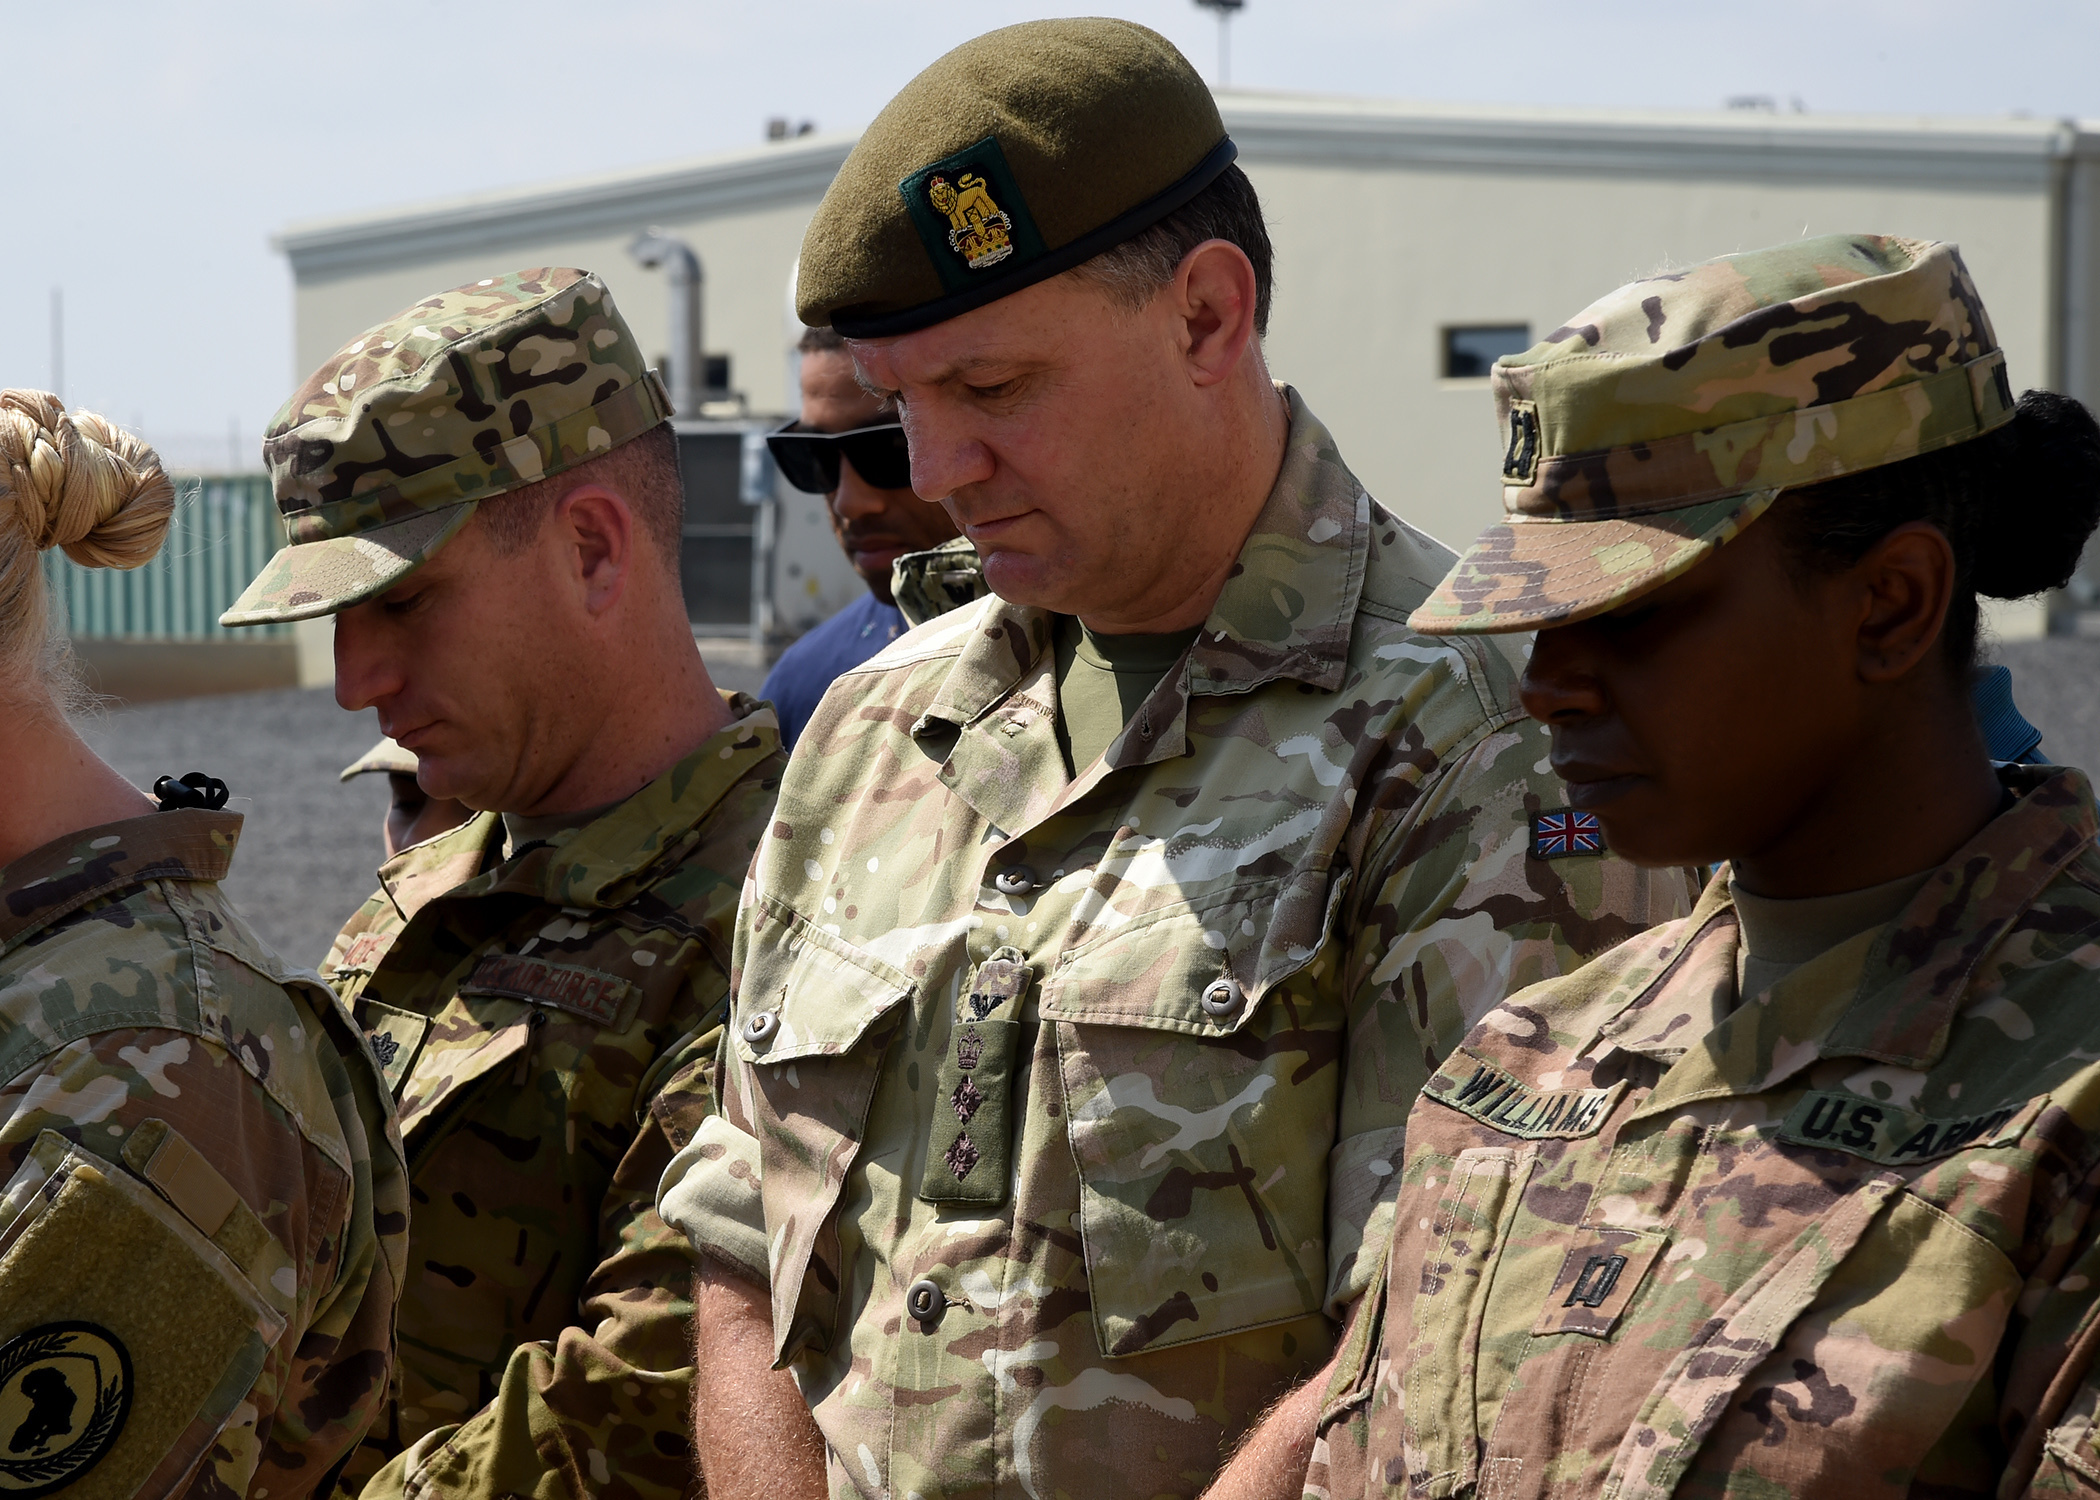 British Army Col. Simon Butt (center), Combined Joint Task Force-Horn of Africa plans and policy director, observes a moment of silence during a ceremony honoring the late U.S. President George H.W. Bush at Camp Lemonnier, Djibouti, Dec. 5, 2018. (U.S. Navy Photo by Mass Communication Specialist 1st Class Nick Scott/released)